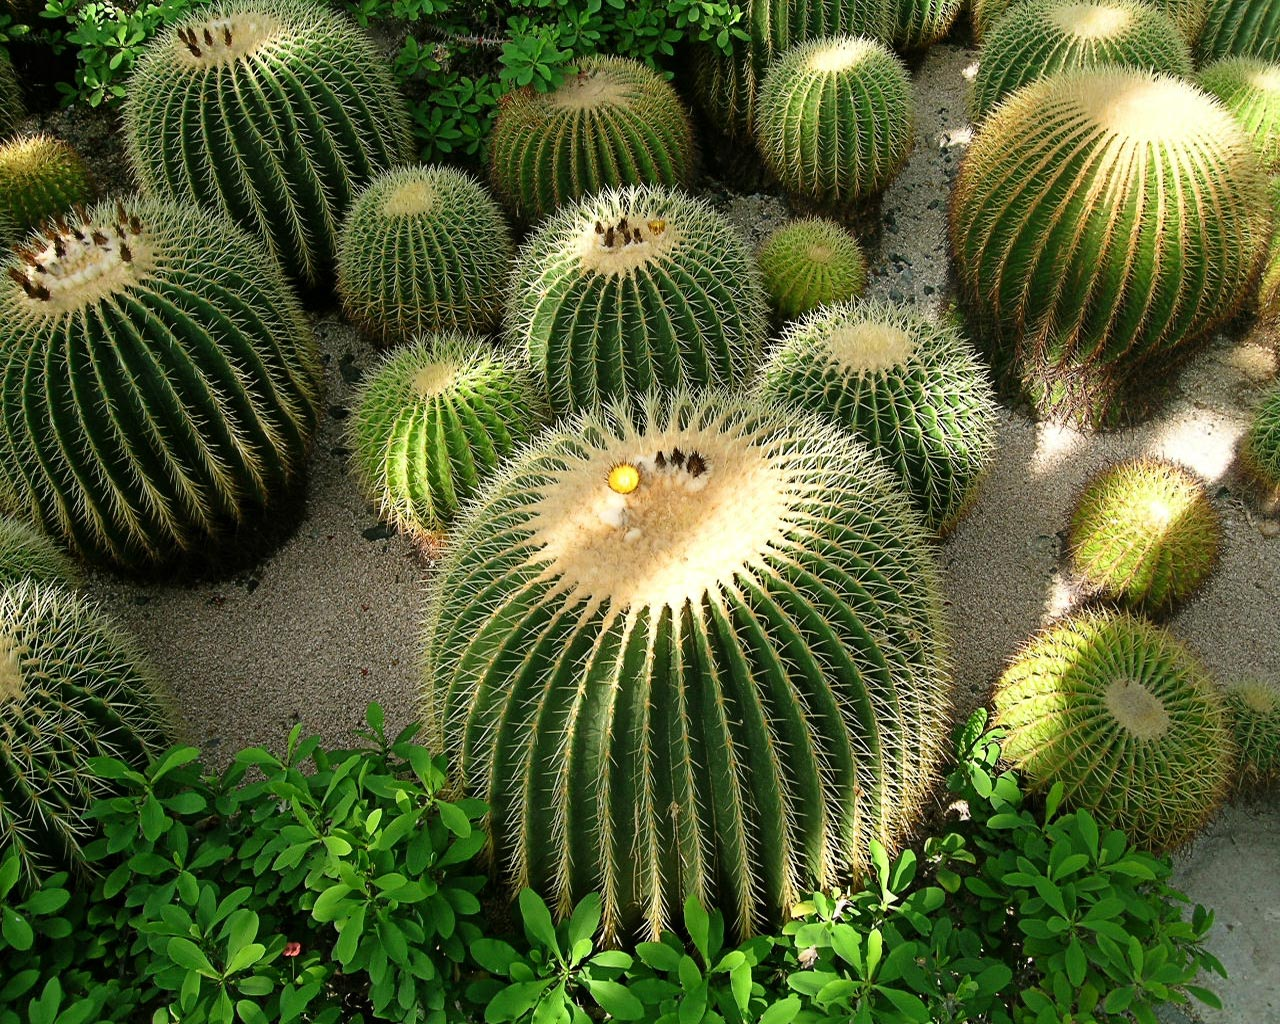 hd cactus wallpapers - photo #6